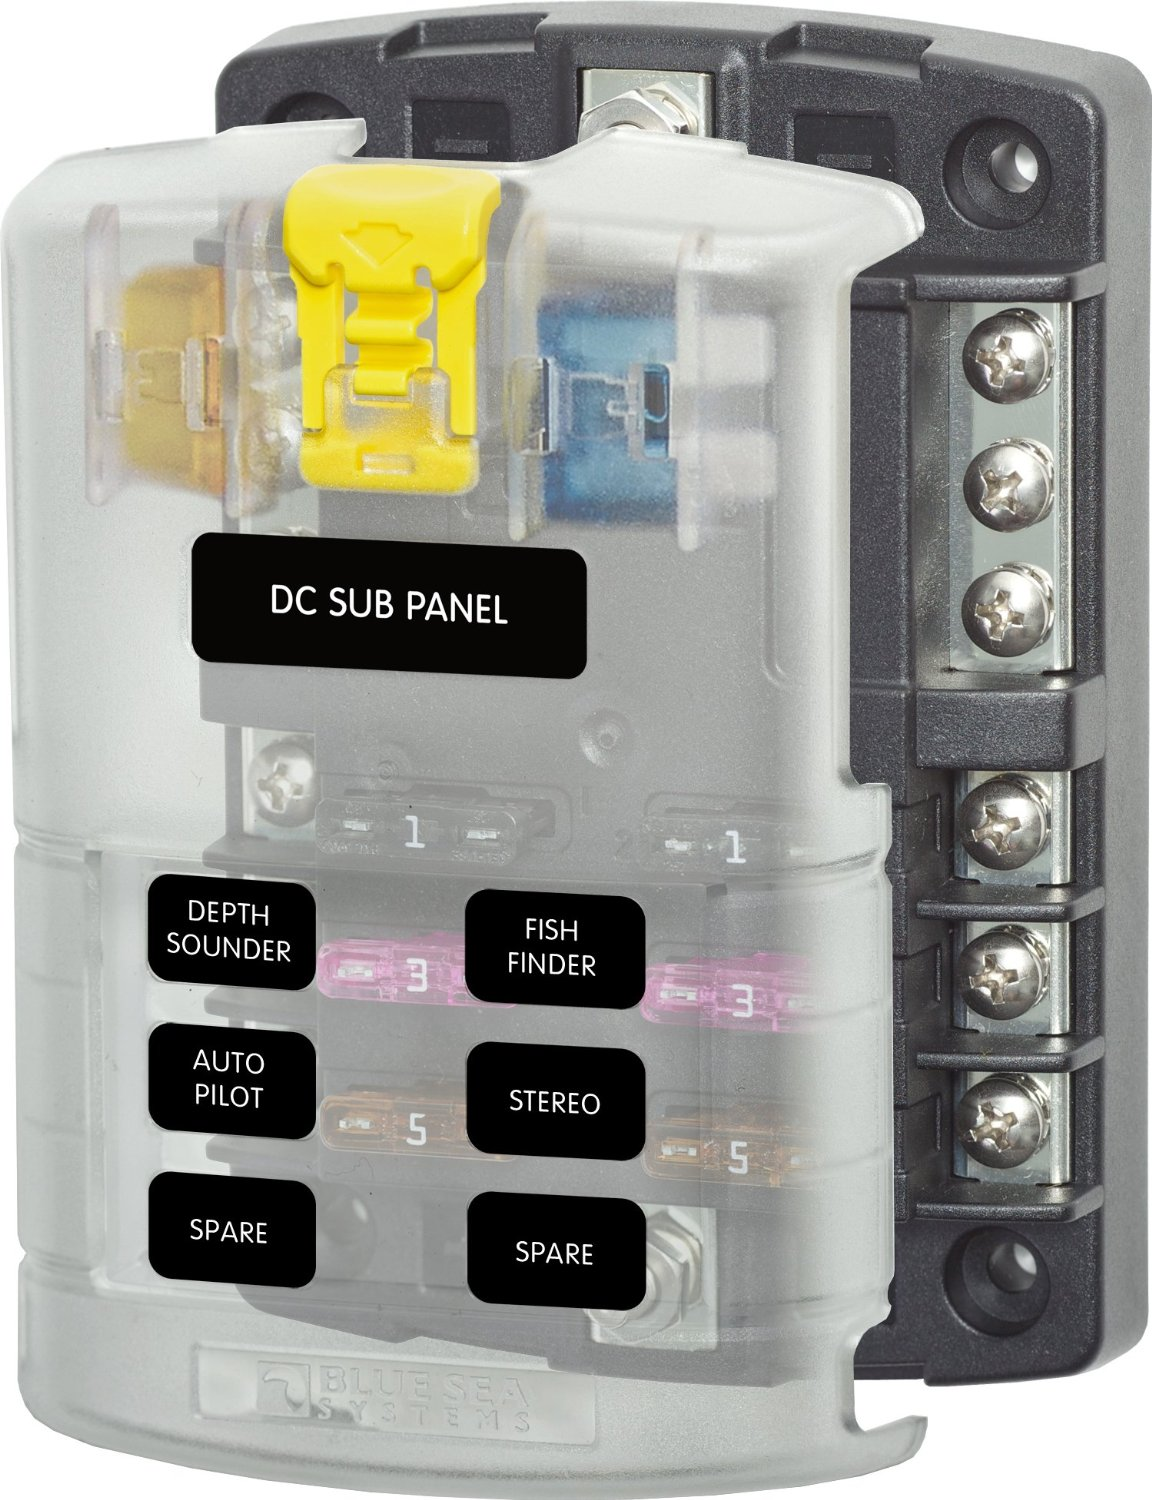 fuse block placement can am commander forum click image for larger version 81xeia6b2kl sl1500 jpg views 222 size